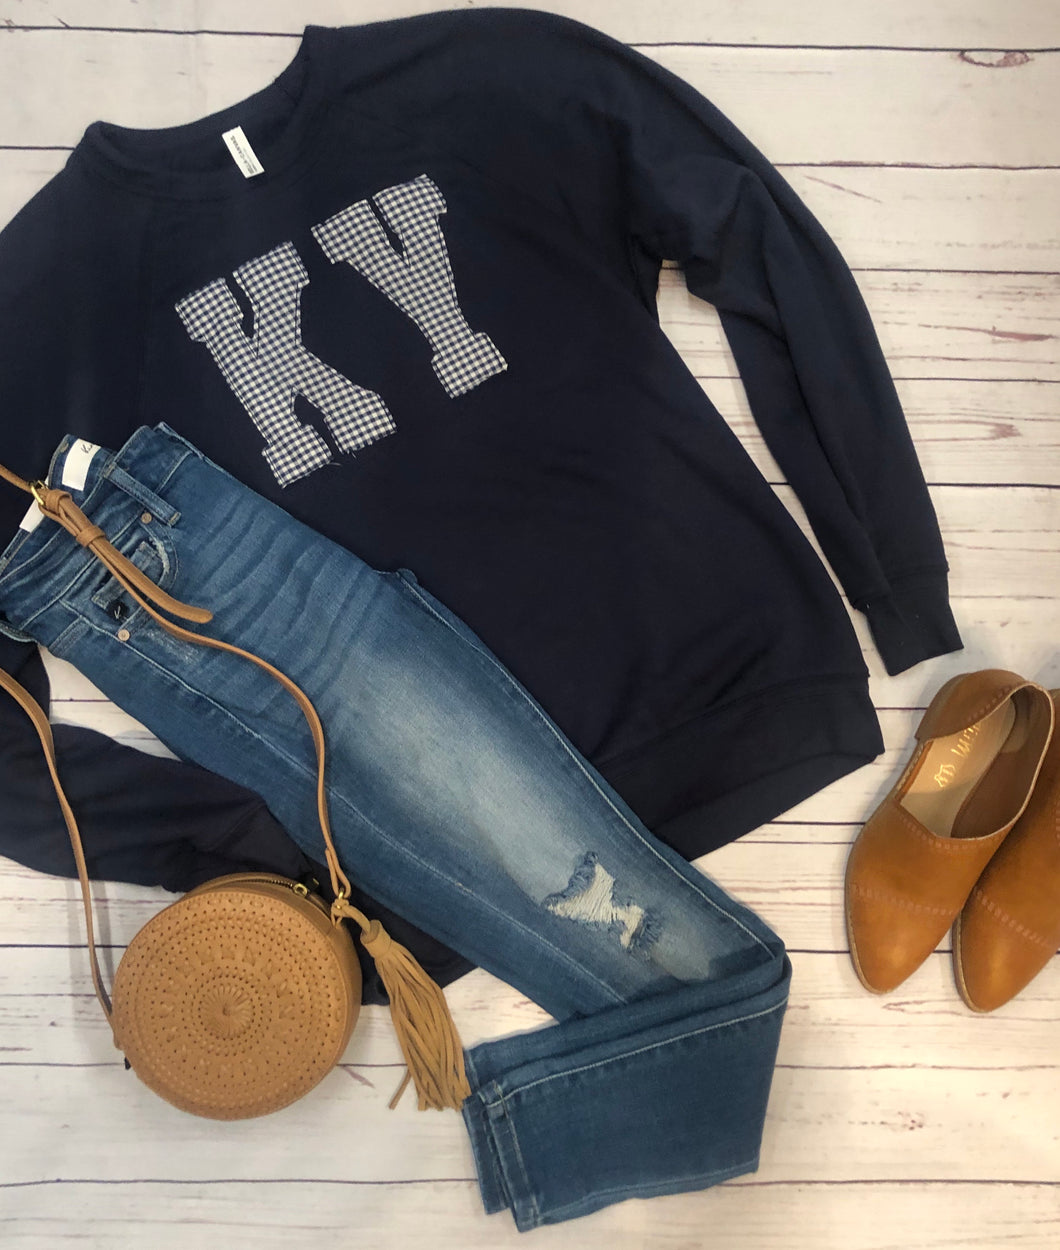 Navy Bella Canvas Sweatshirt + Blue/White Check KY